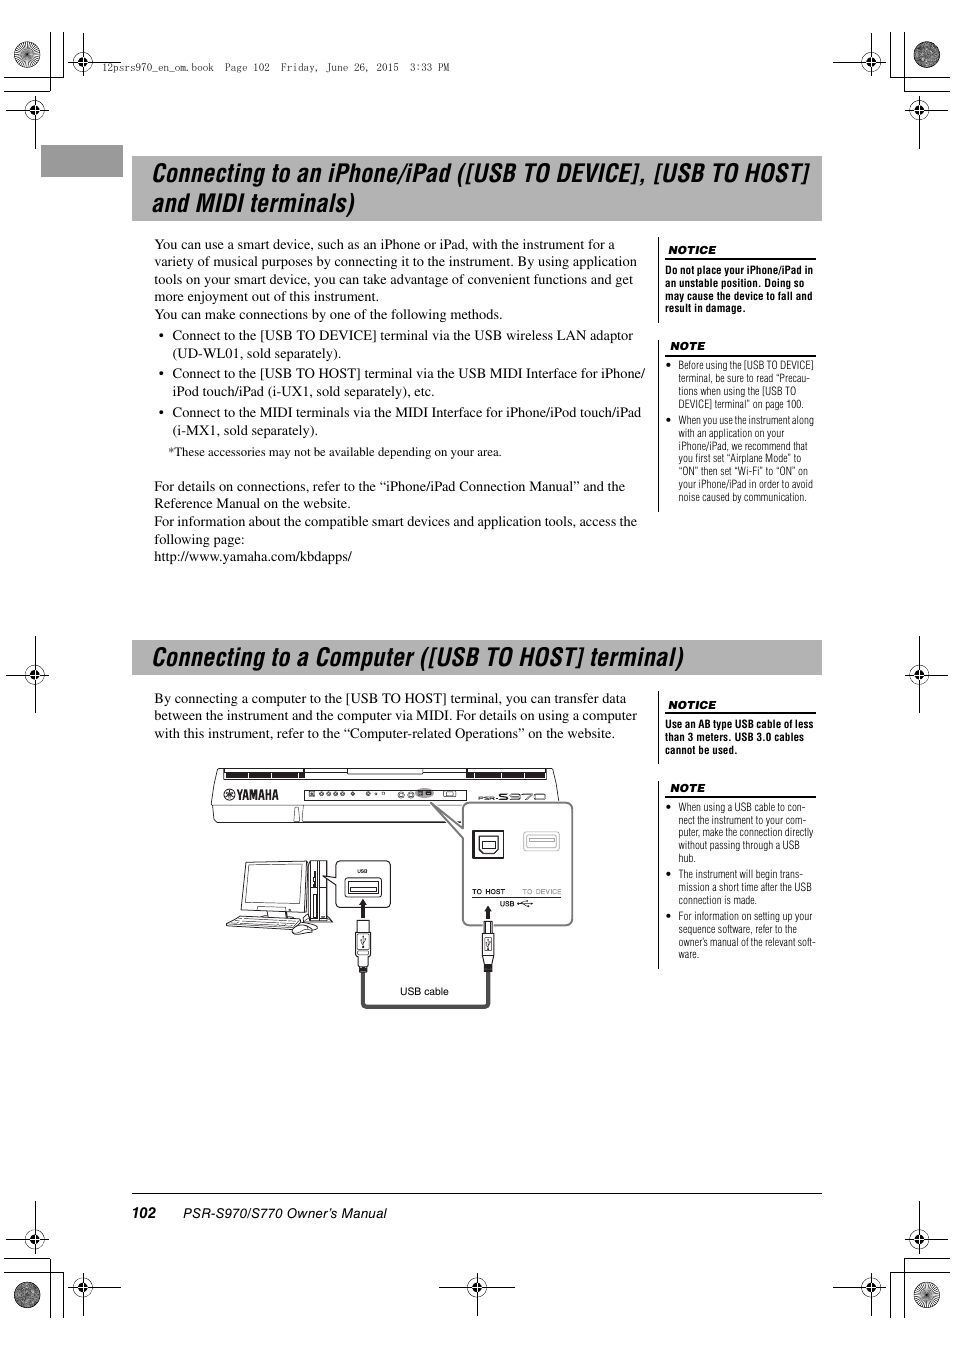 Manualguide Ipad Usb Wiring Diagram Ipod Cable Charger Rh Wiringdiagram Design Image Not